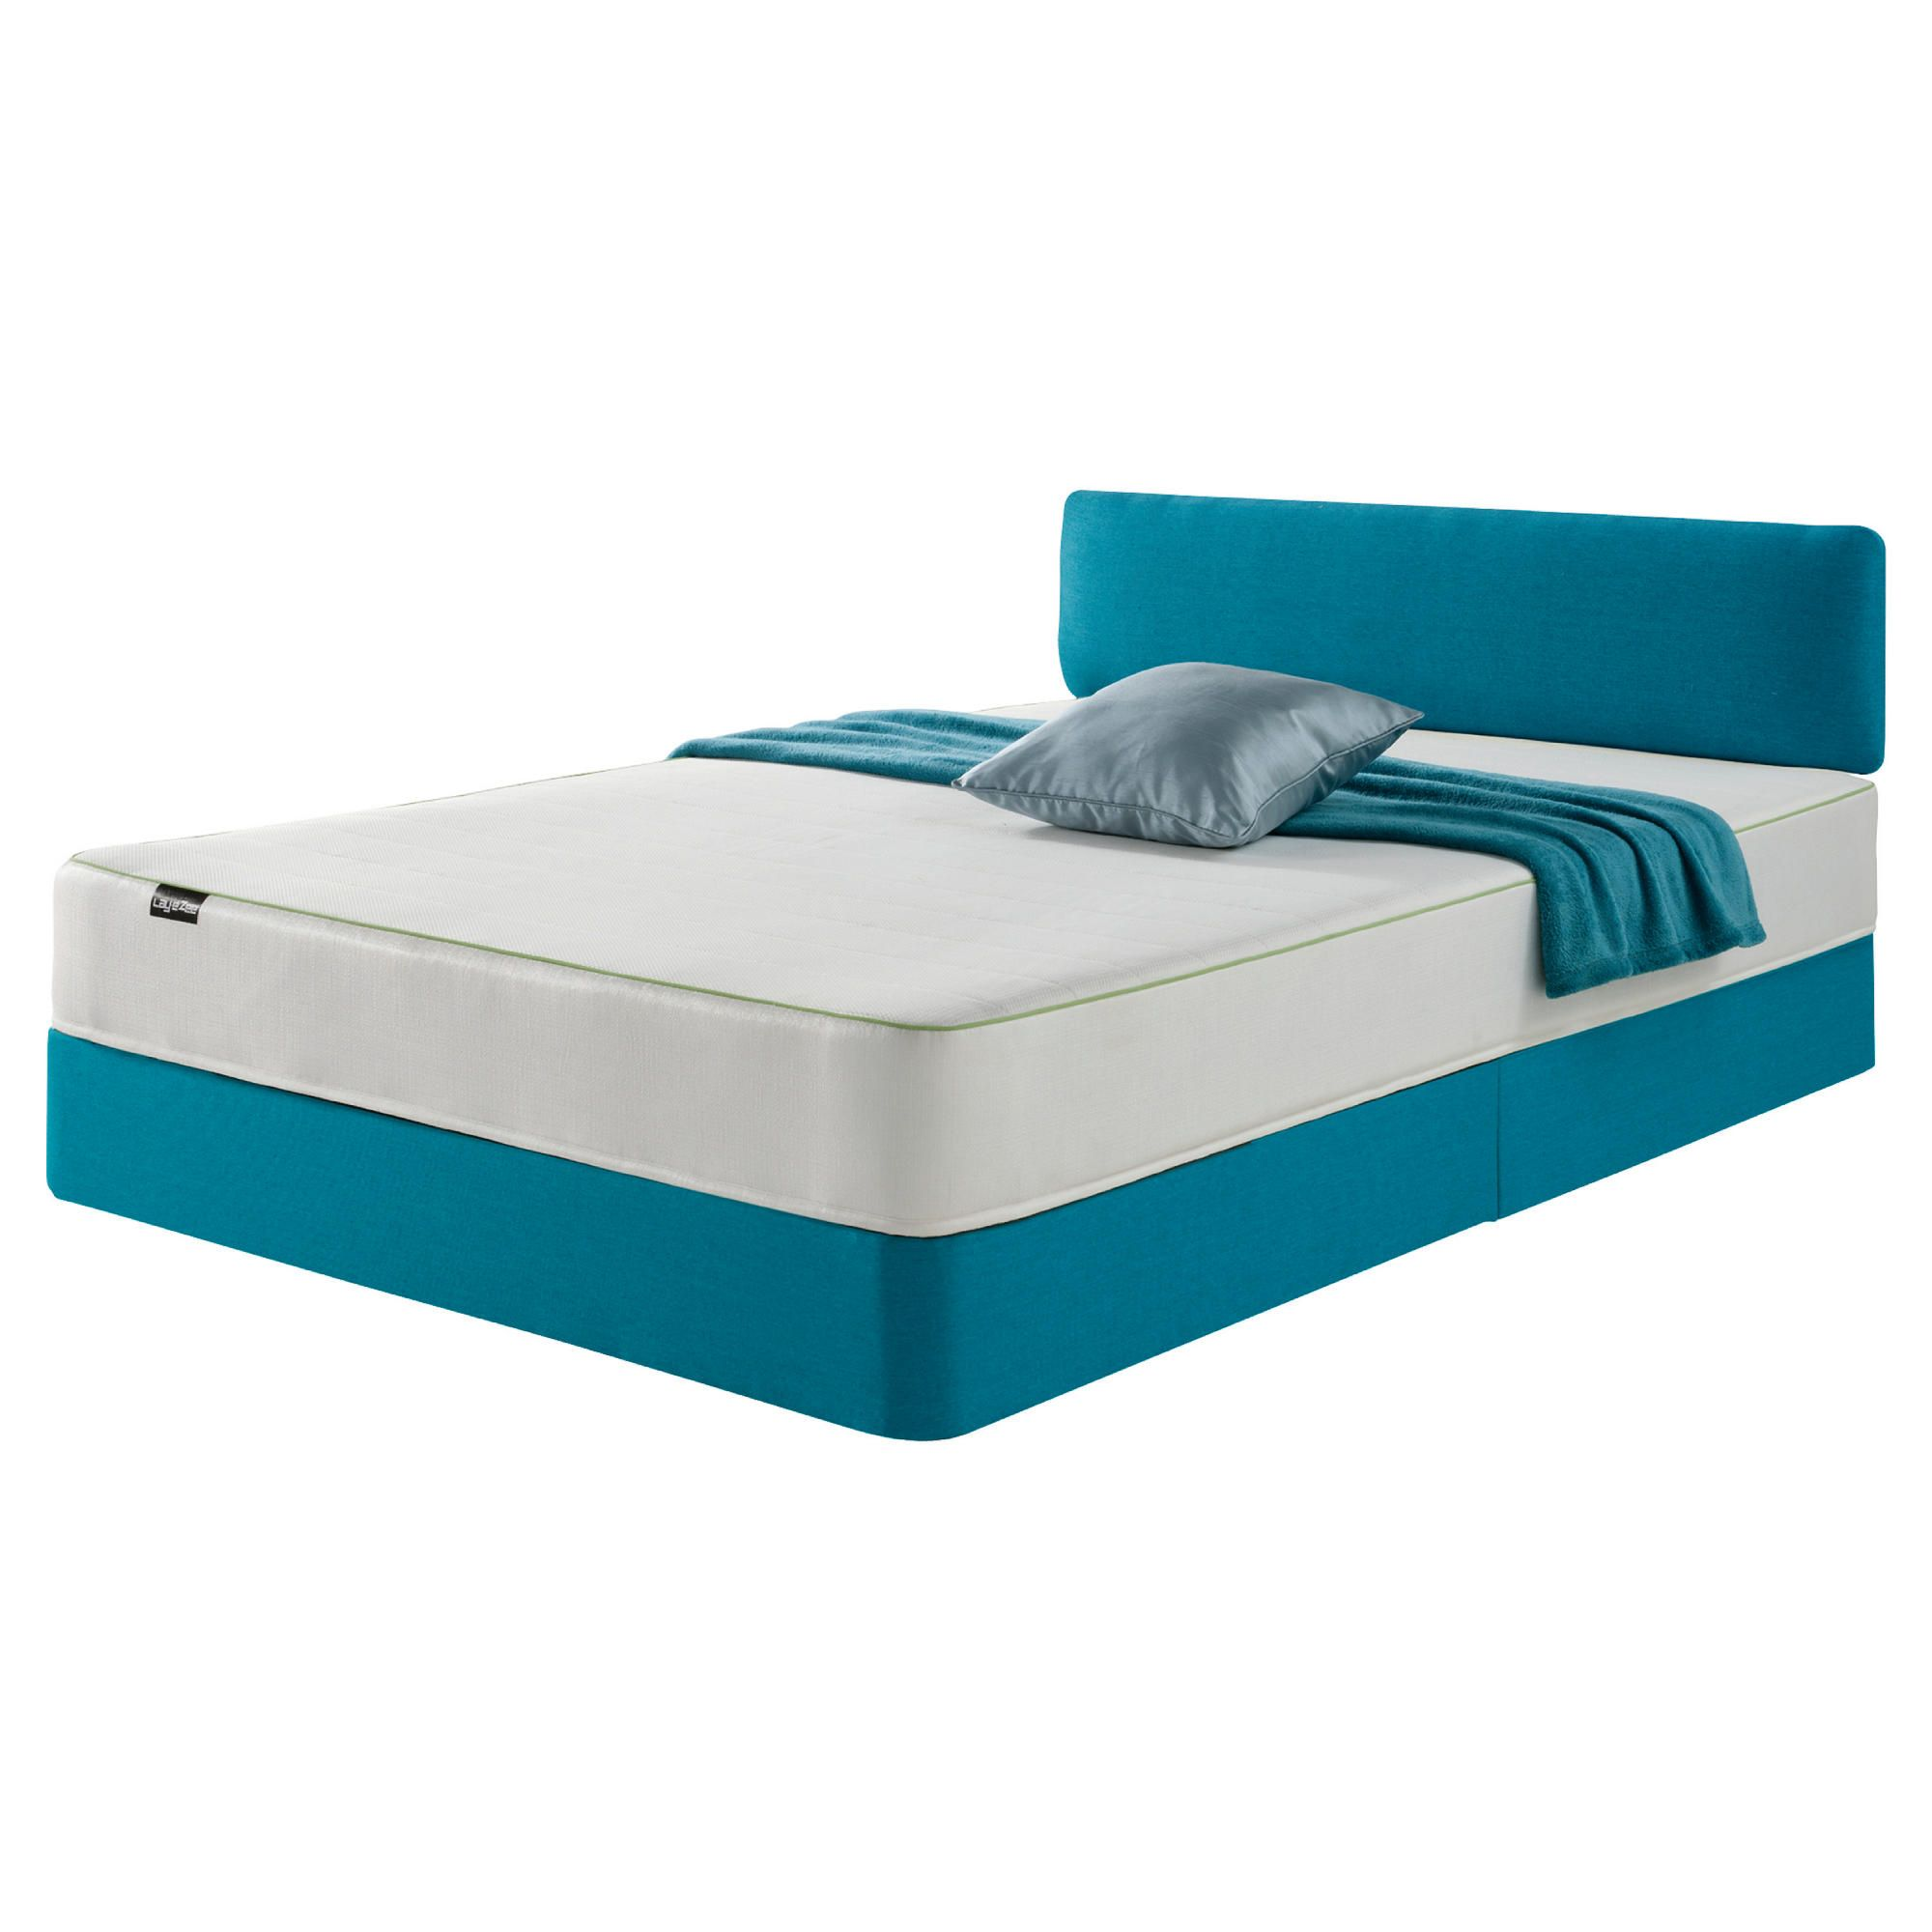 Layezee Teal Bed and Headboard Standard Mattress King at Tesco Direct